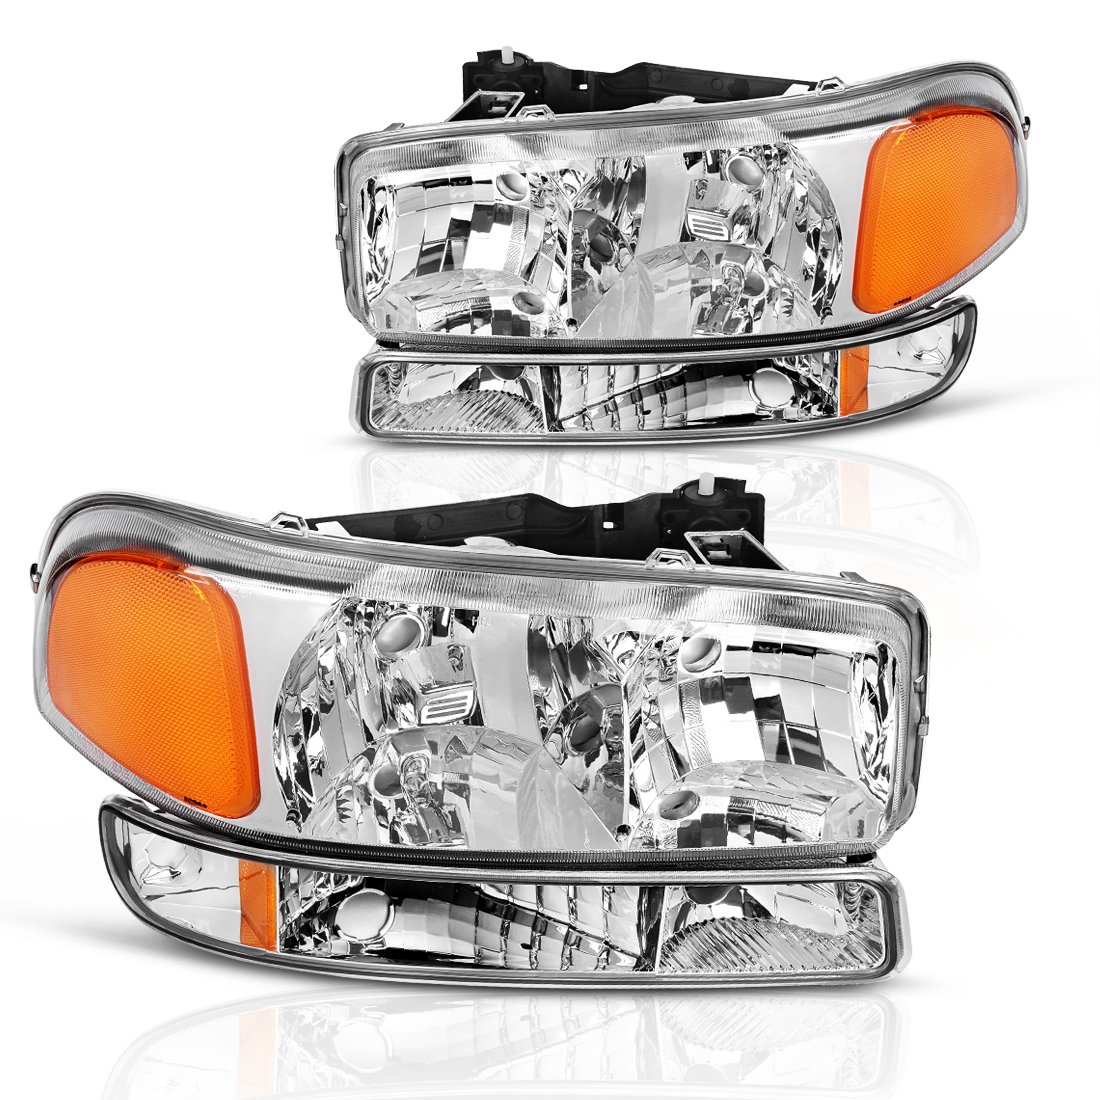 AUTOSAVER88 For 99 00 01 02 03 04 05 06 07 GMC Sierra Headlight Assembly+Park/Signal Lamp,OE Projector Headlamp,Chrome housing,One-Year Limited Warranty(4 pcs,GM2503188&GM2520174)